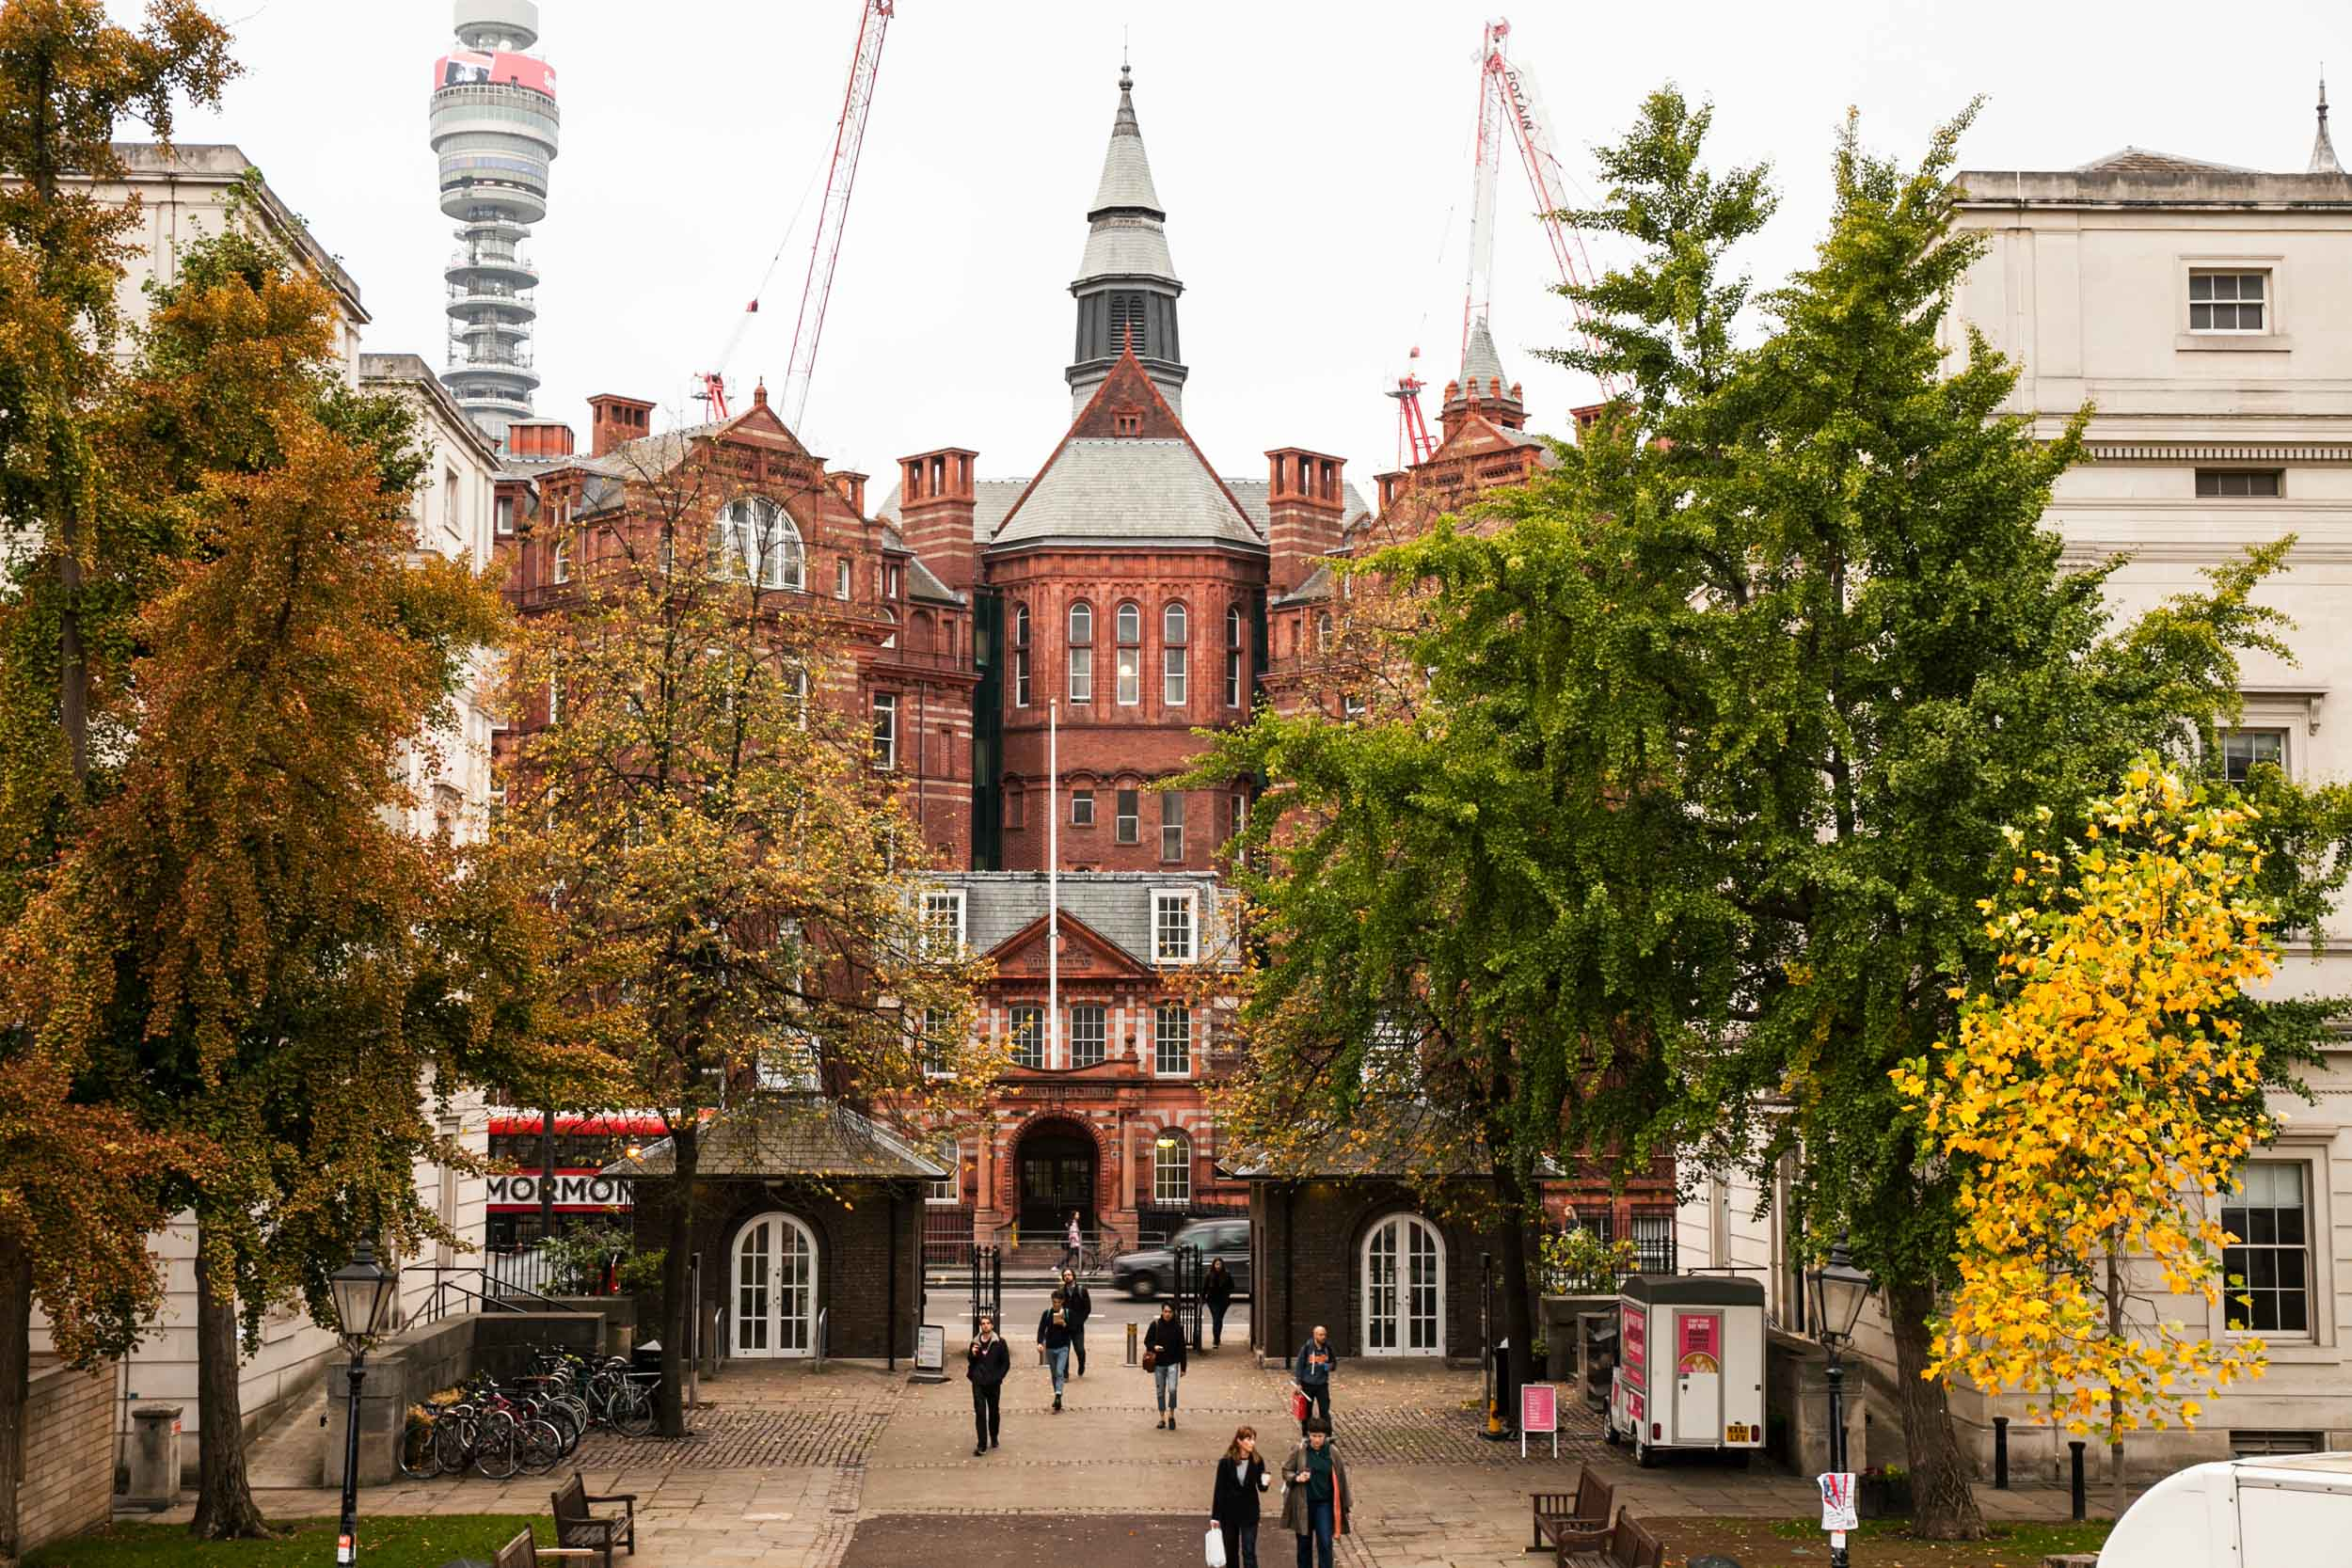 Bloomsbury gave its name to the Bloomsbury group, and we will be walking in the footsteps of some of its members, such as Virginia Woolf.